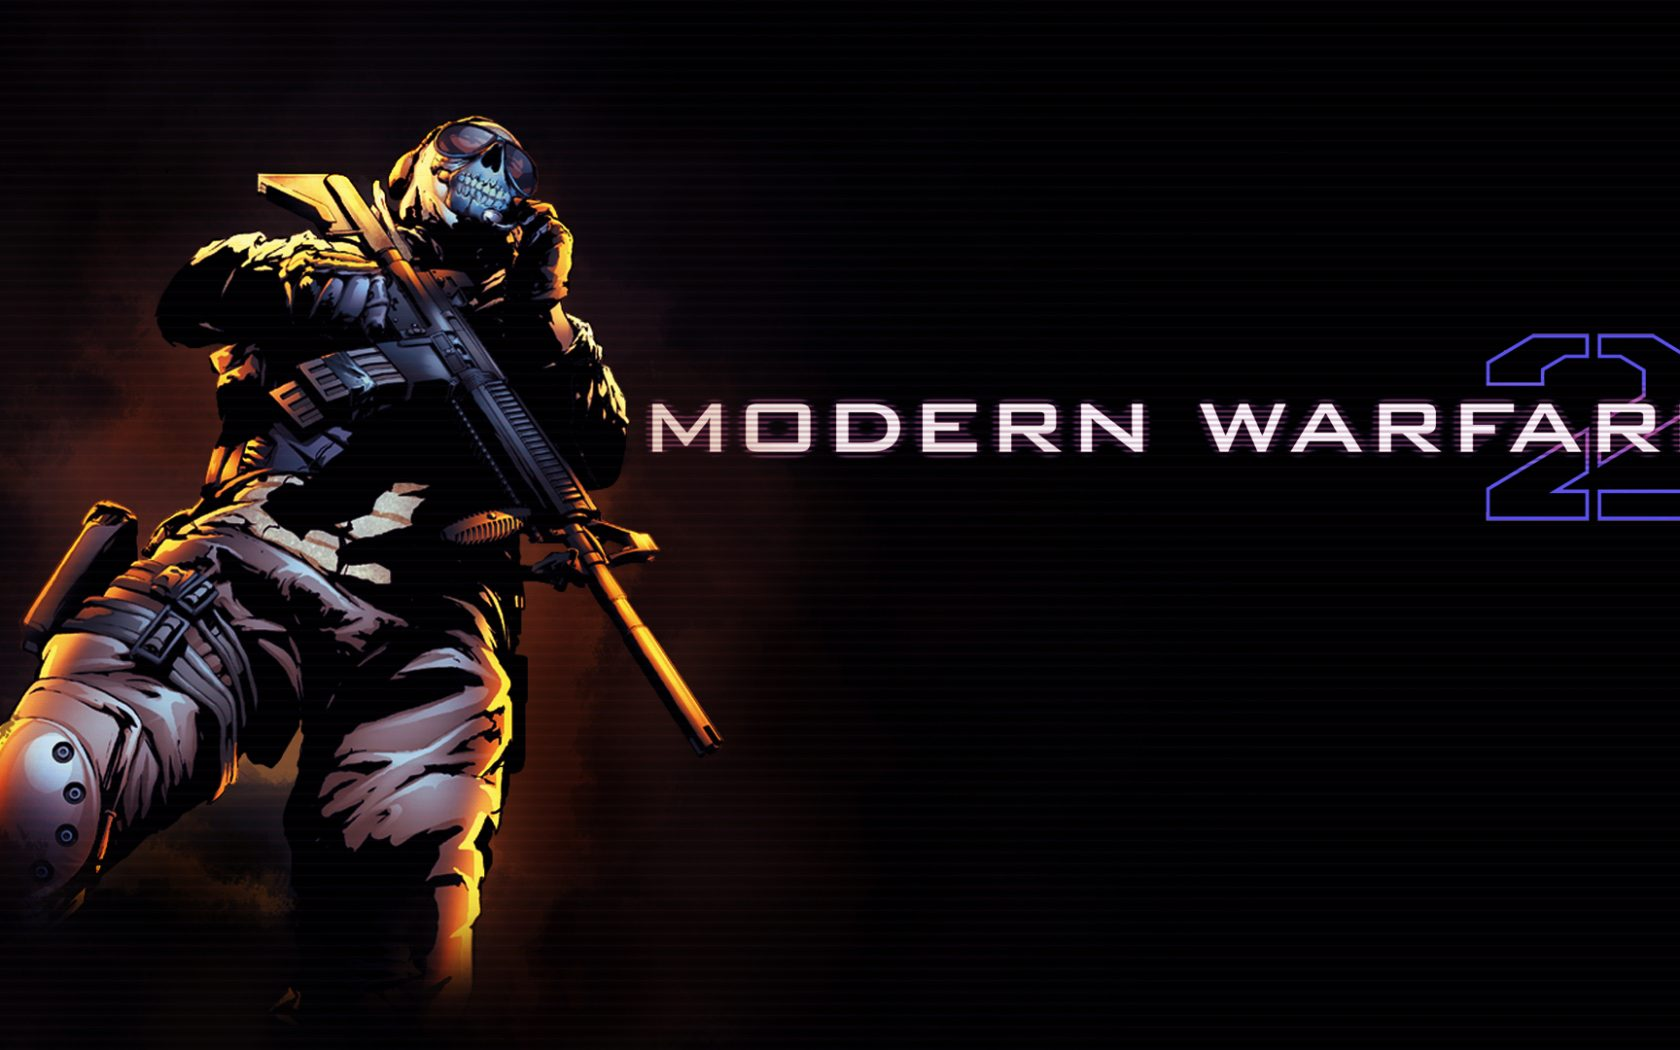 Call Of Duty Modern Warfare 2 Ghost 3 Hd Wallpaper